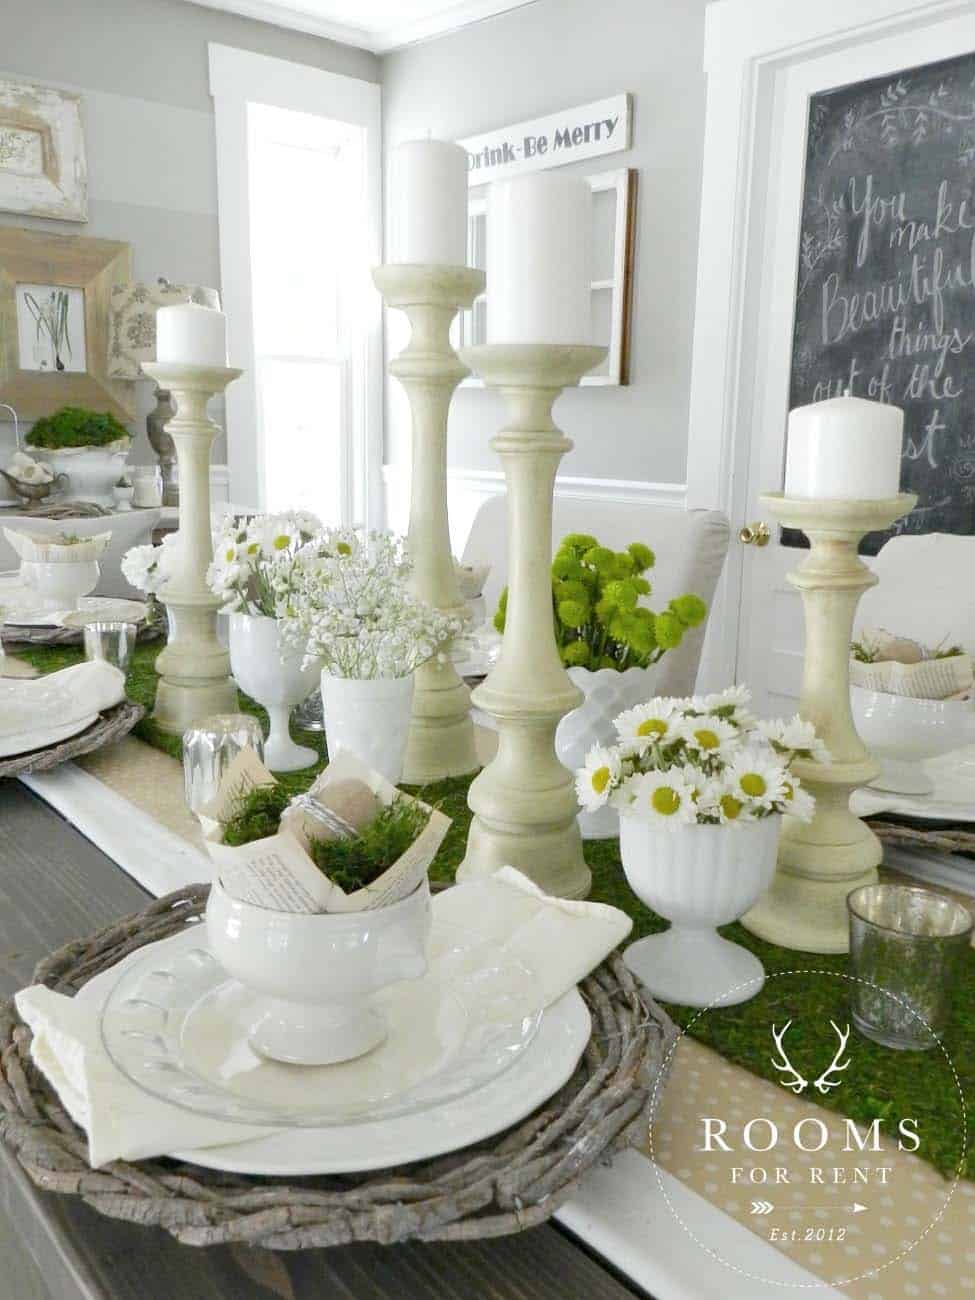 Inspiring Easter Table Centerpiece Ideas-15-1 Kindesign